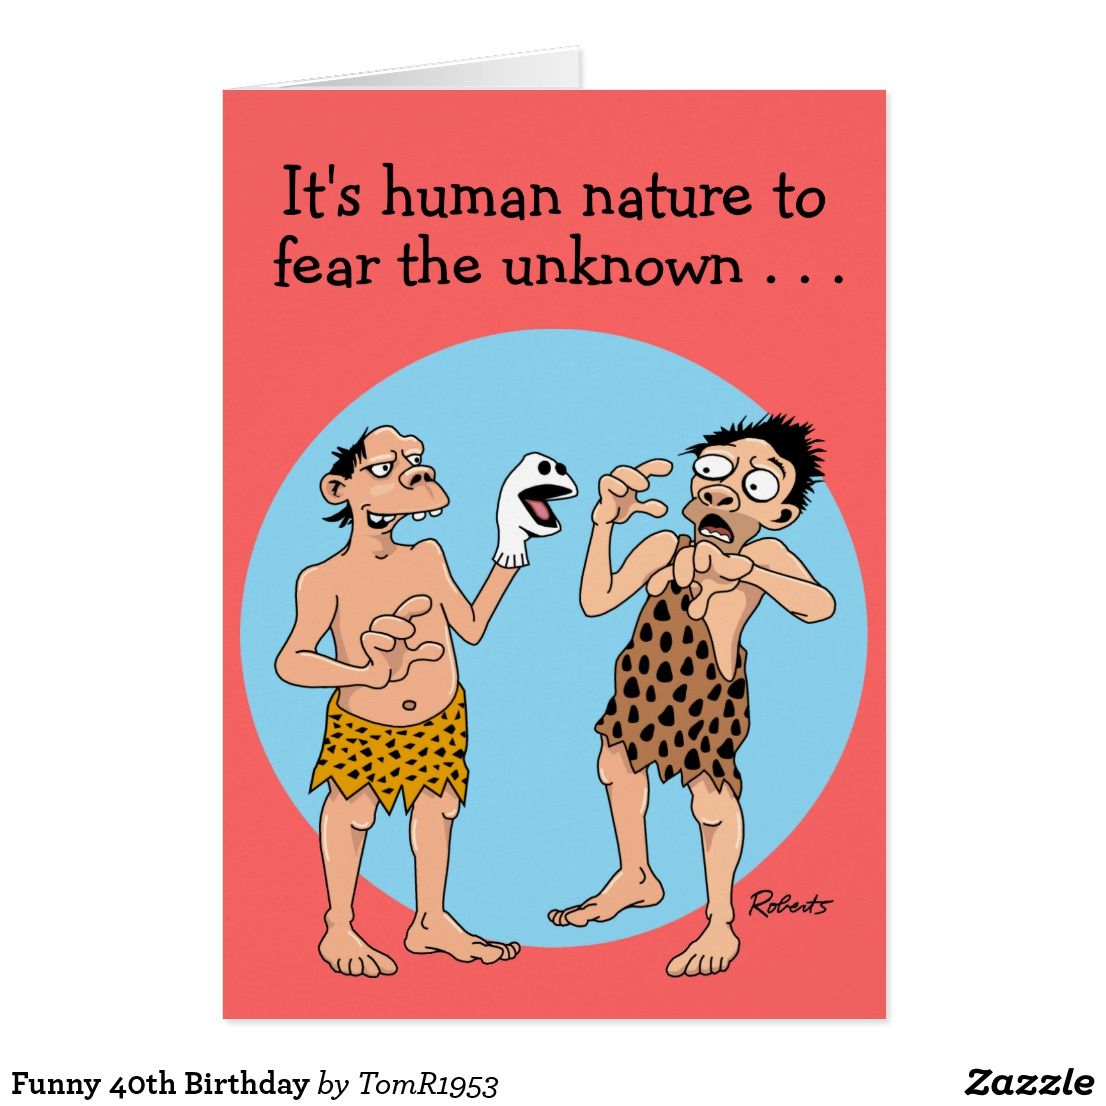 Funny 40th Birthday Card Funny Greeting Cards Pinterest 40th